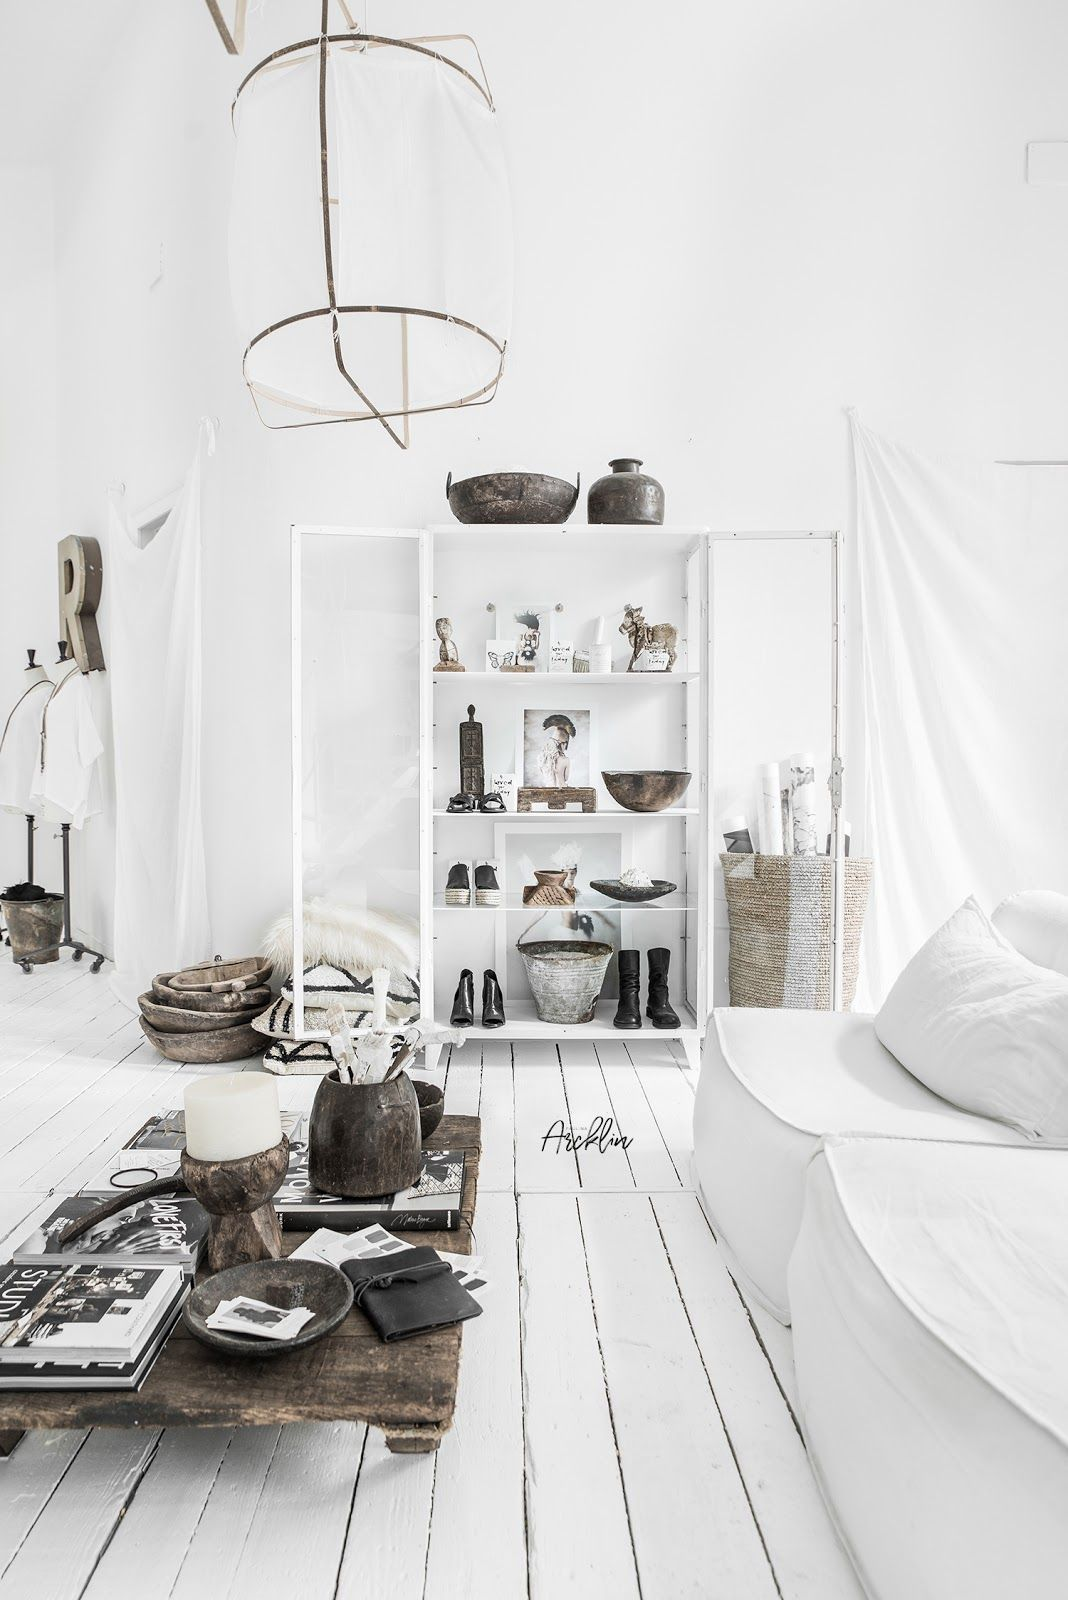 CURRENT STYLING AT MY LOFT  Lighting  Pinterest  Lofts Room